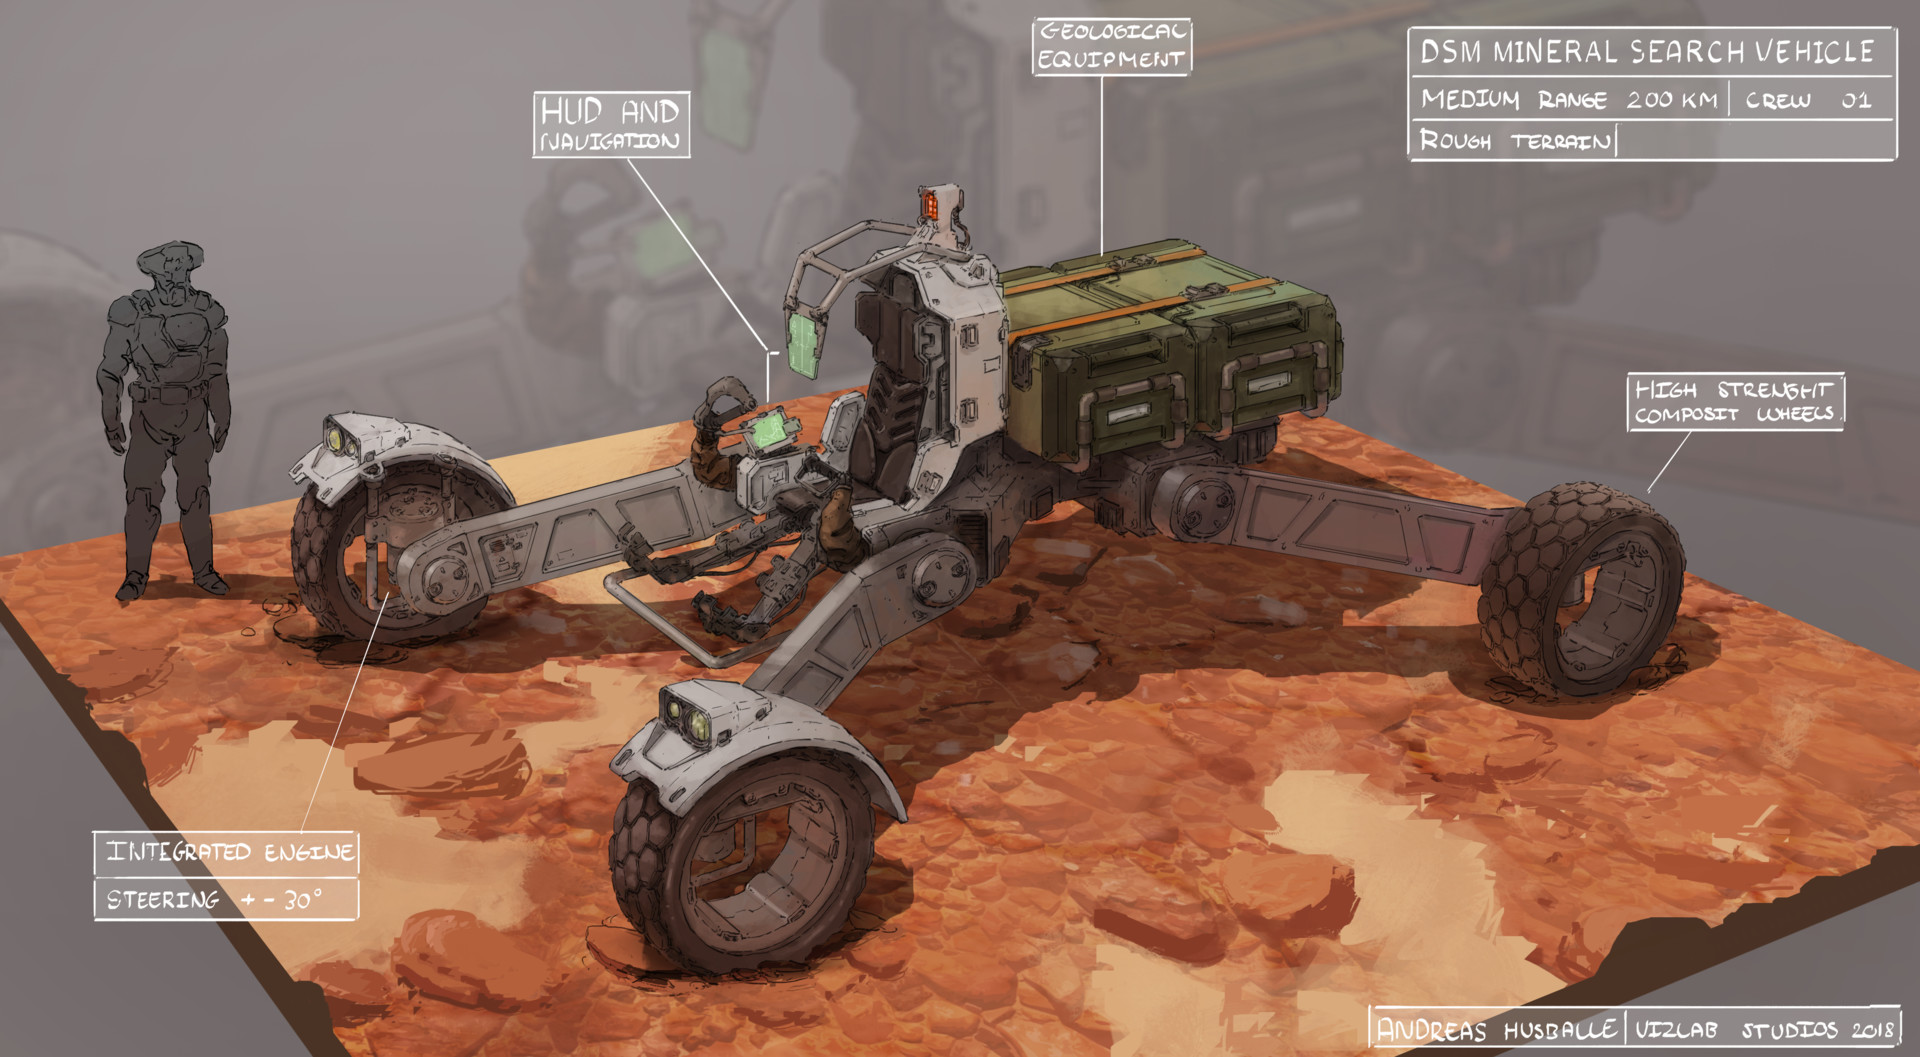 Concept art - DSM Mineral Search Vehicle